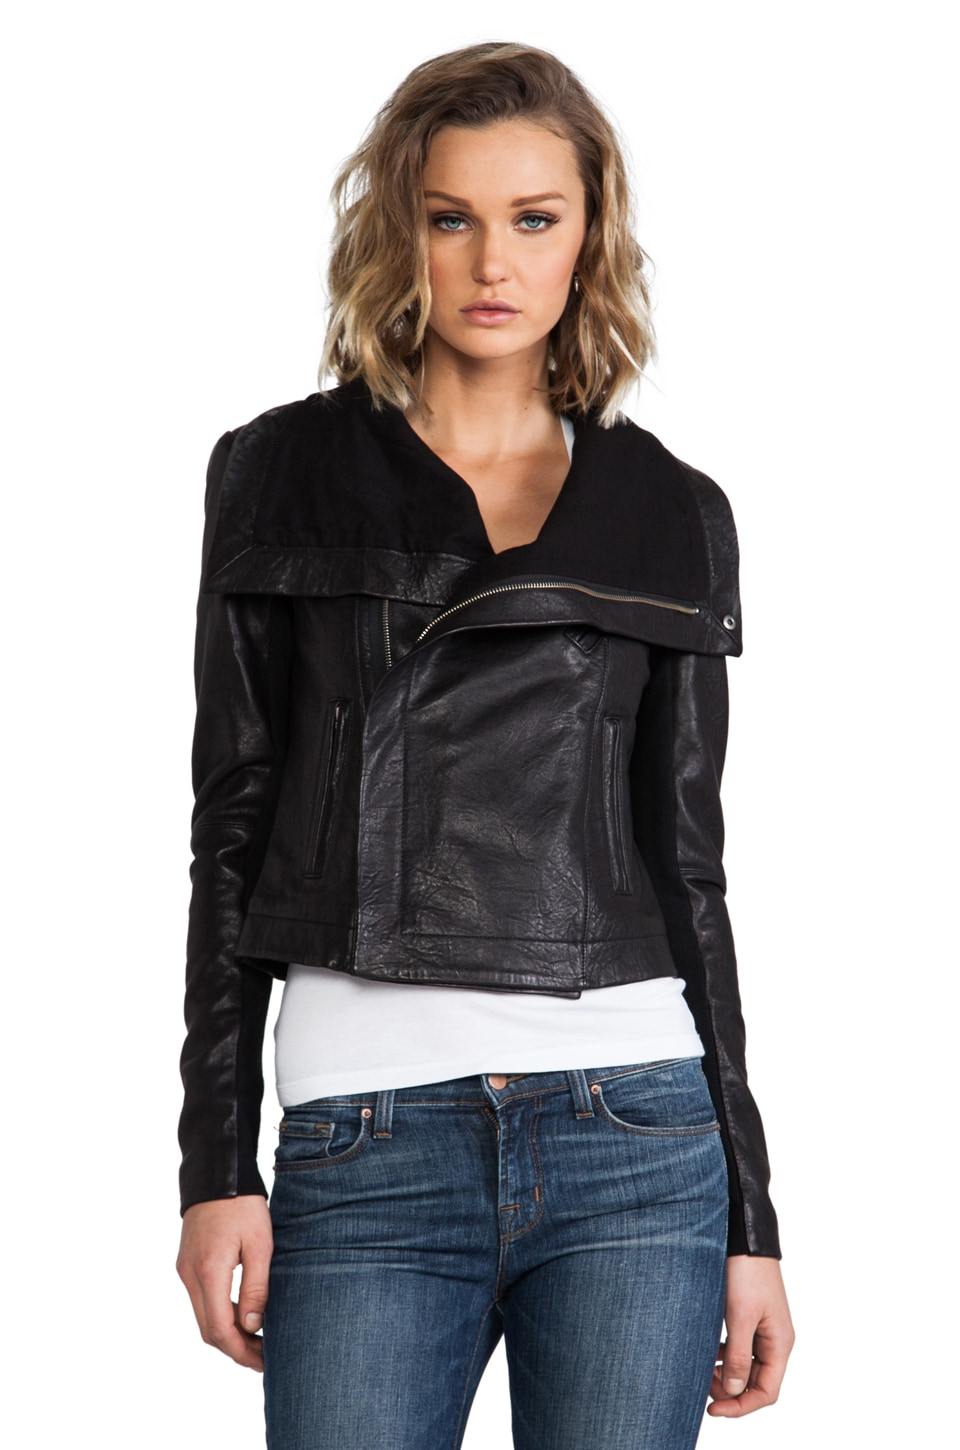 VEDA Max Classic Crispy Leather Jacket in Black